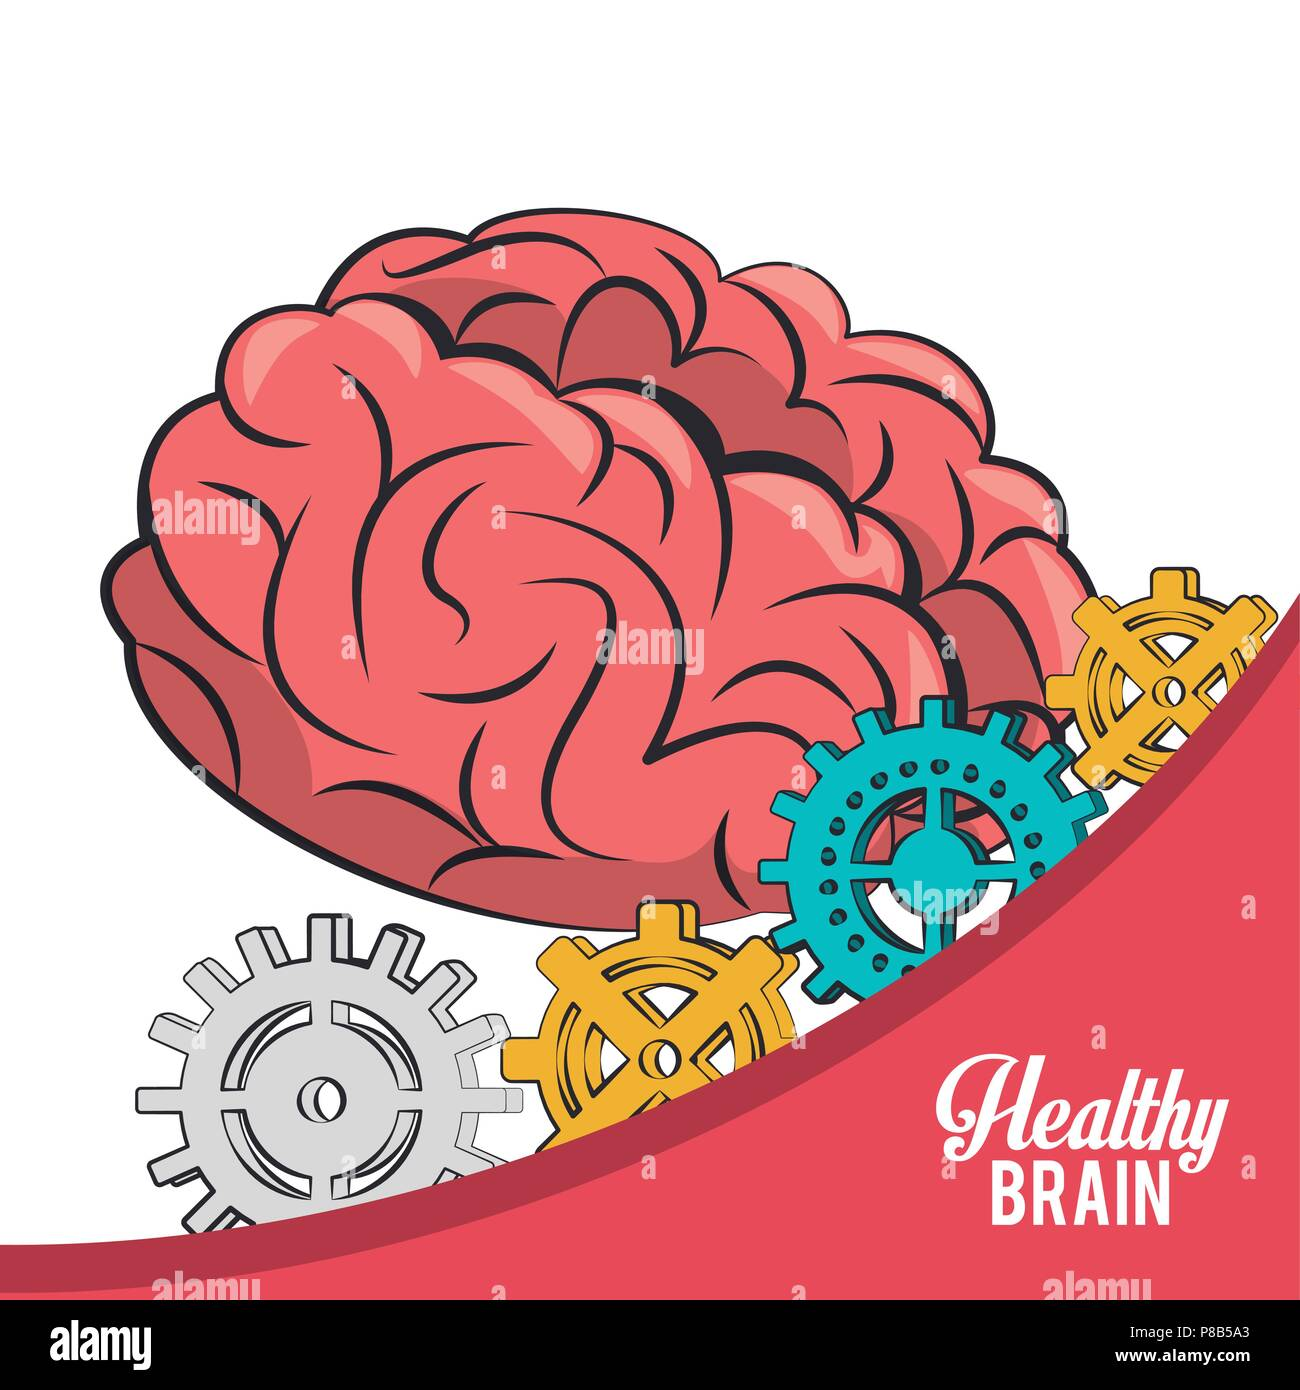 Healthy brain concept - Stock Image